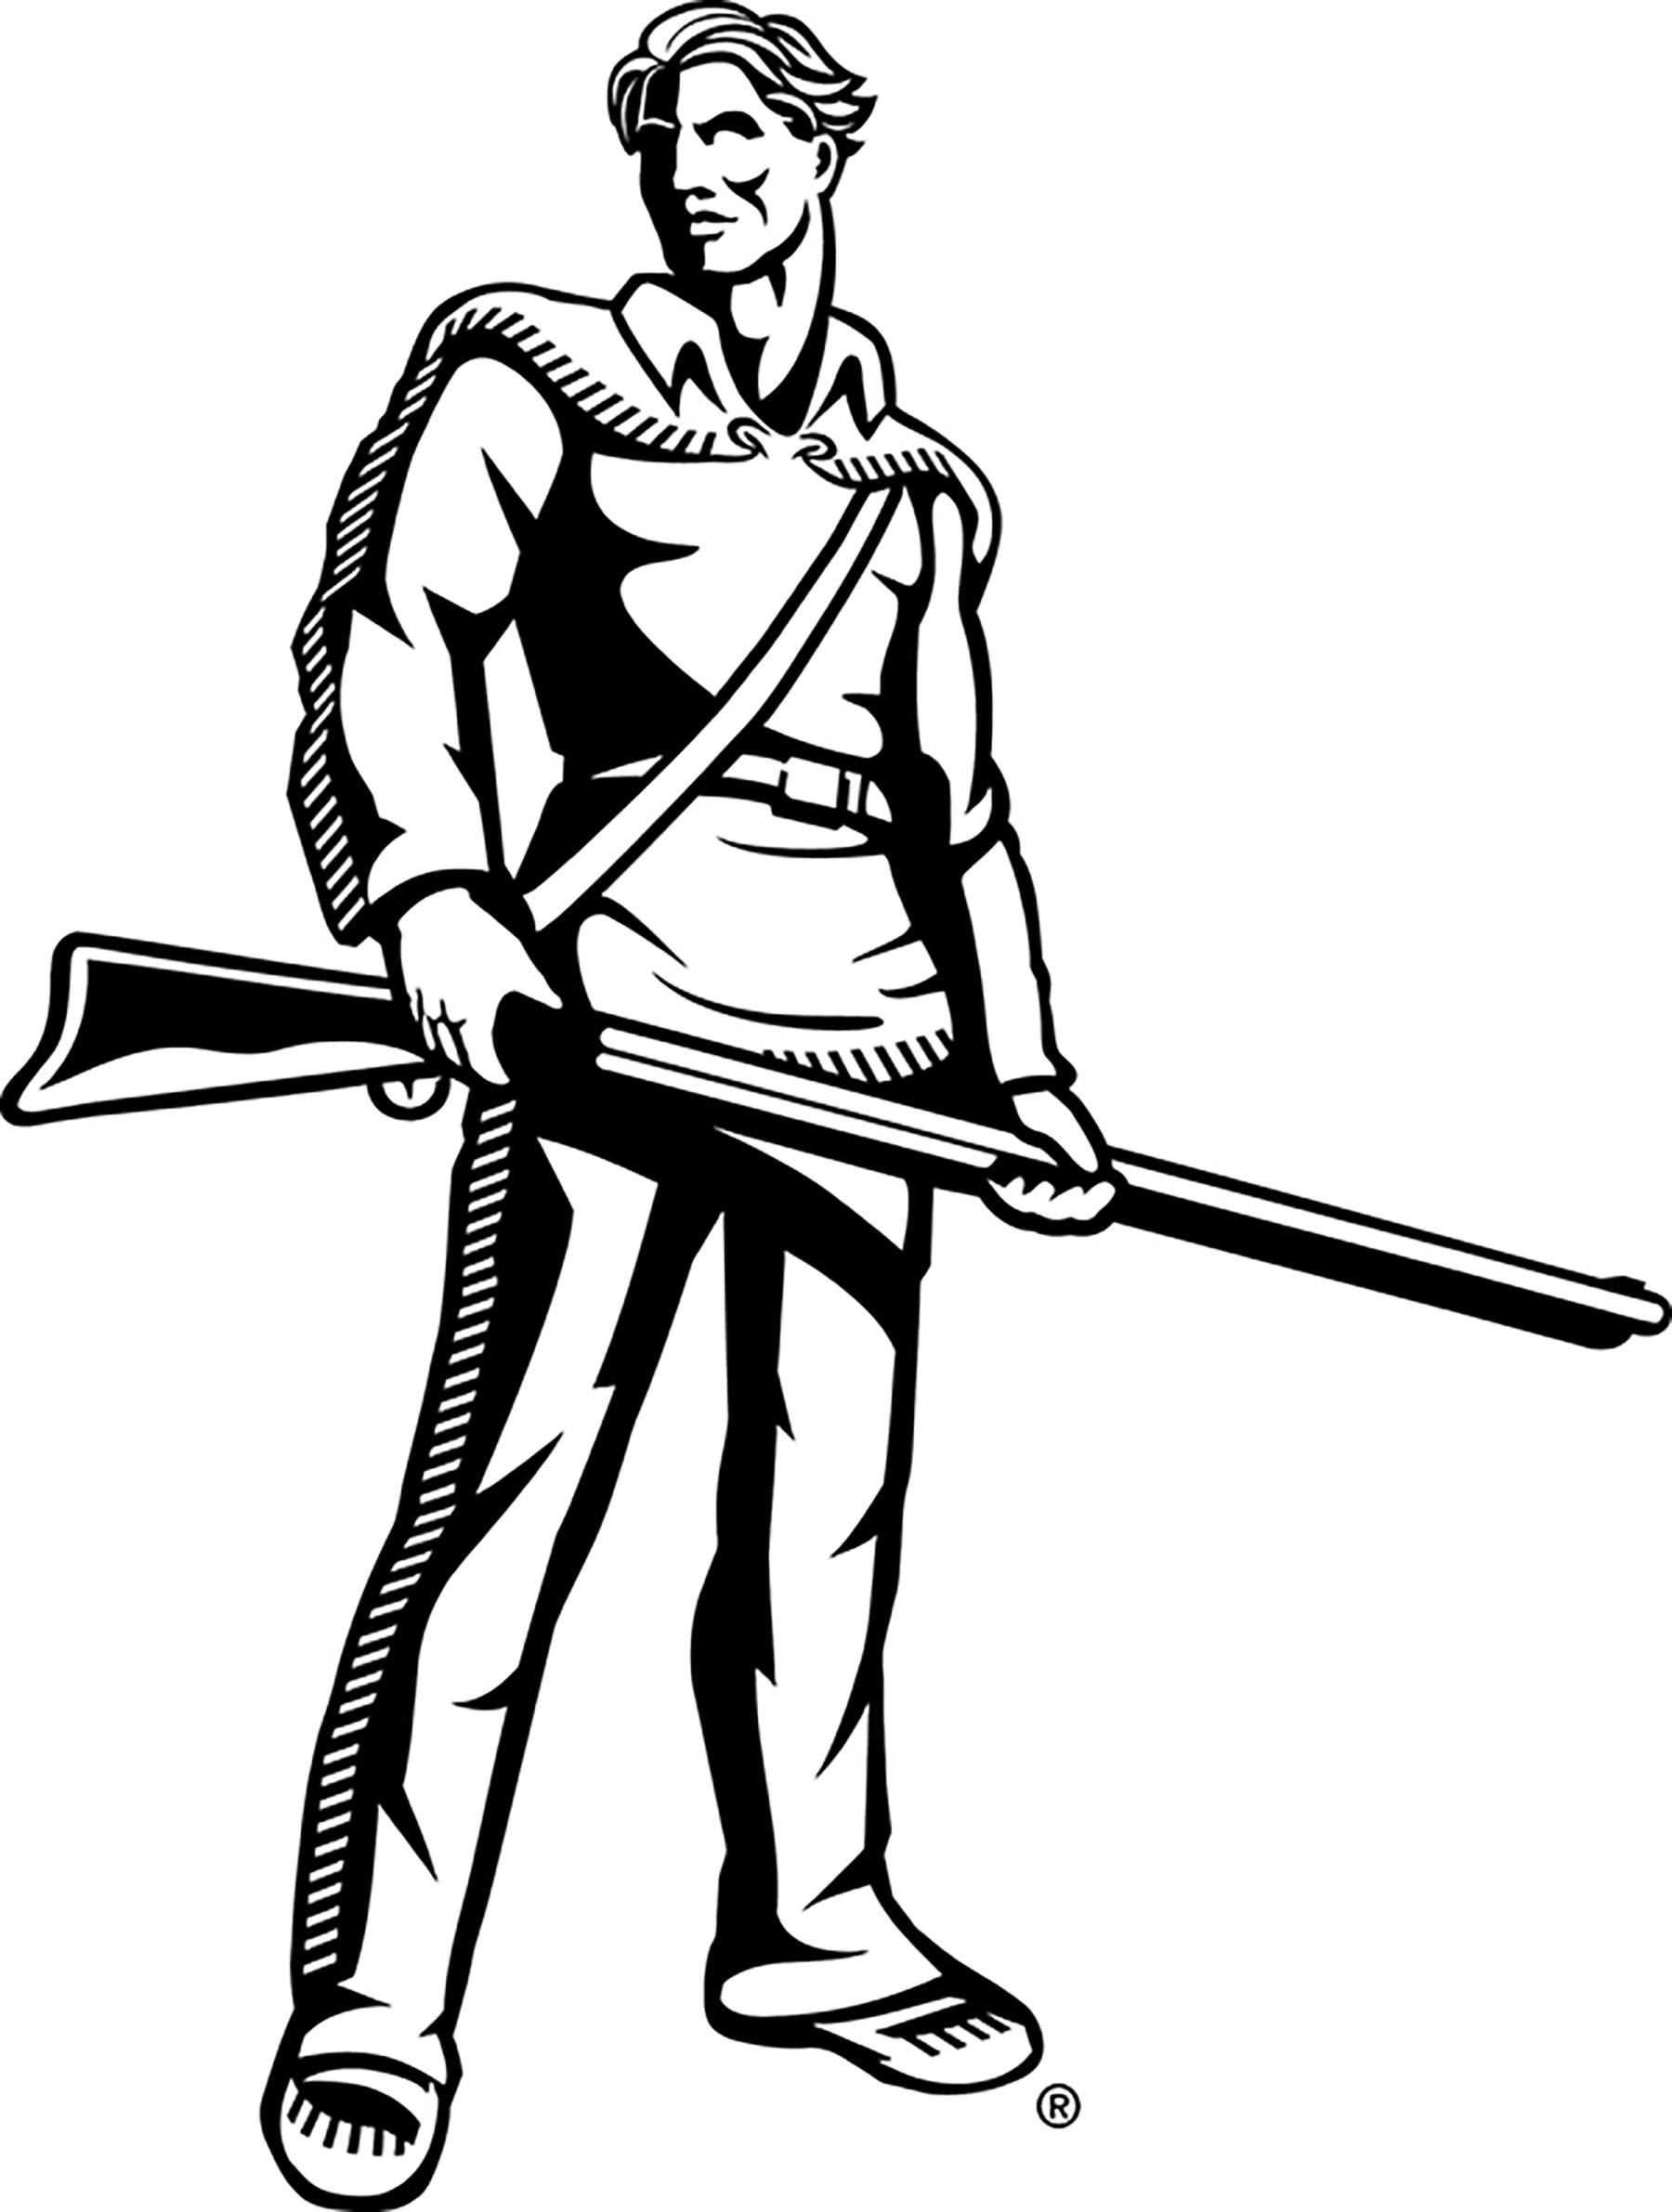 West Virginia Mountaineer Coloring Pages Sketch Coloring Page